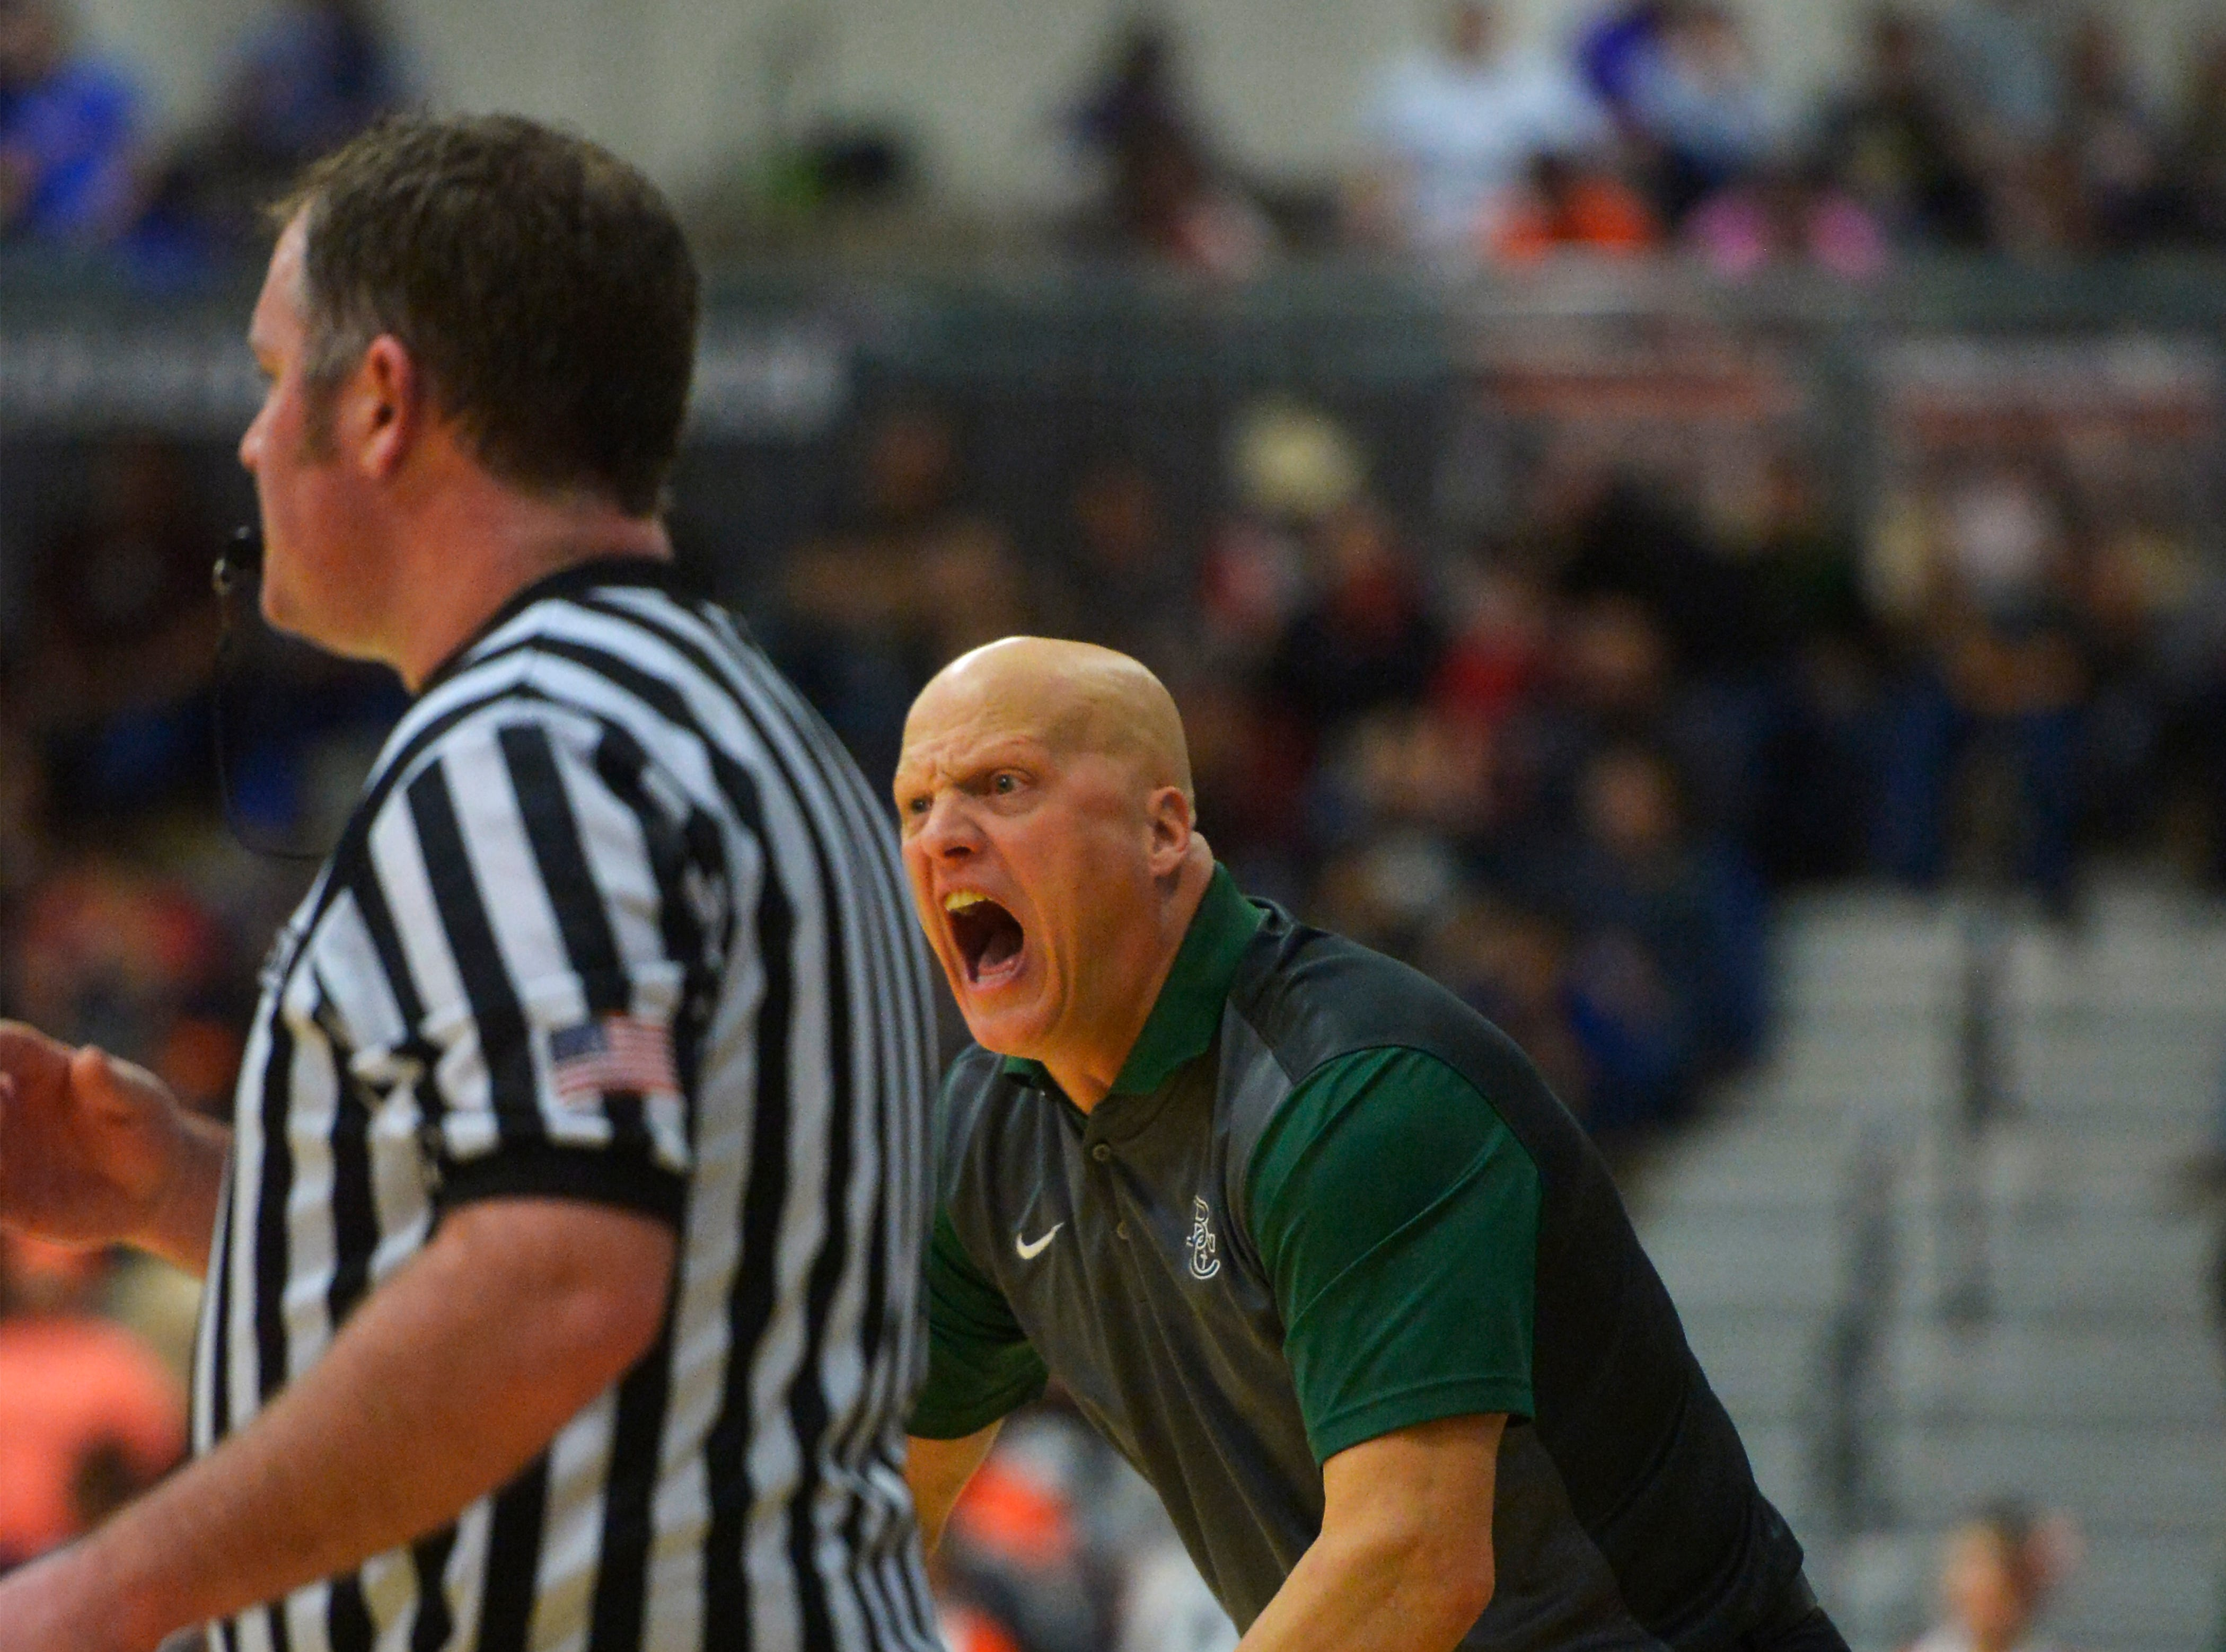 Billings Central coach Jim Stergar yells instructions to his players during the boys title game of the State Class A Basketball Tournament against Hardin in the Four Seasons Arena, Saturday.